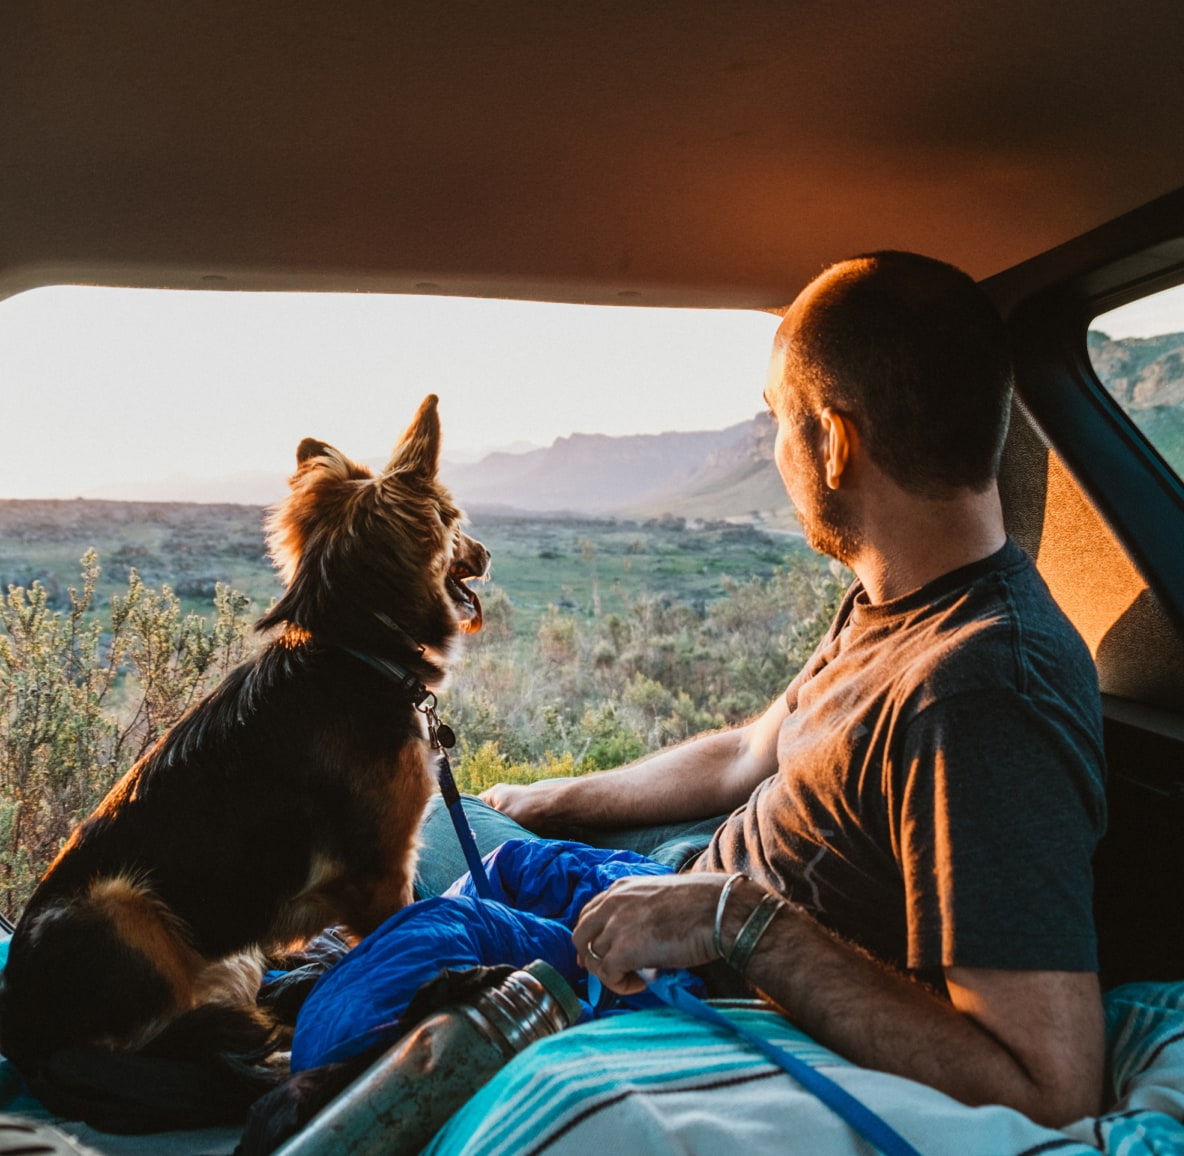 Man on a car camping trip with his dog as they look out the window at mountains